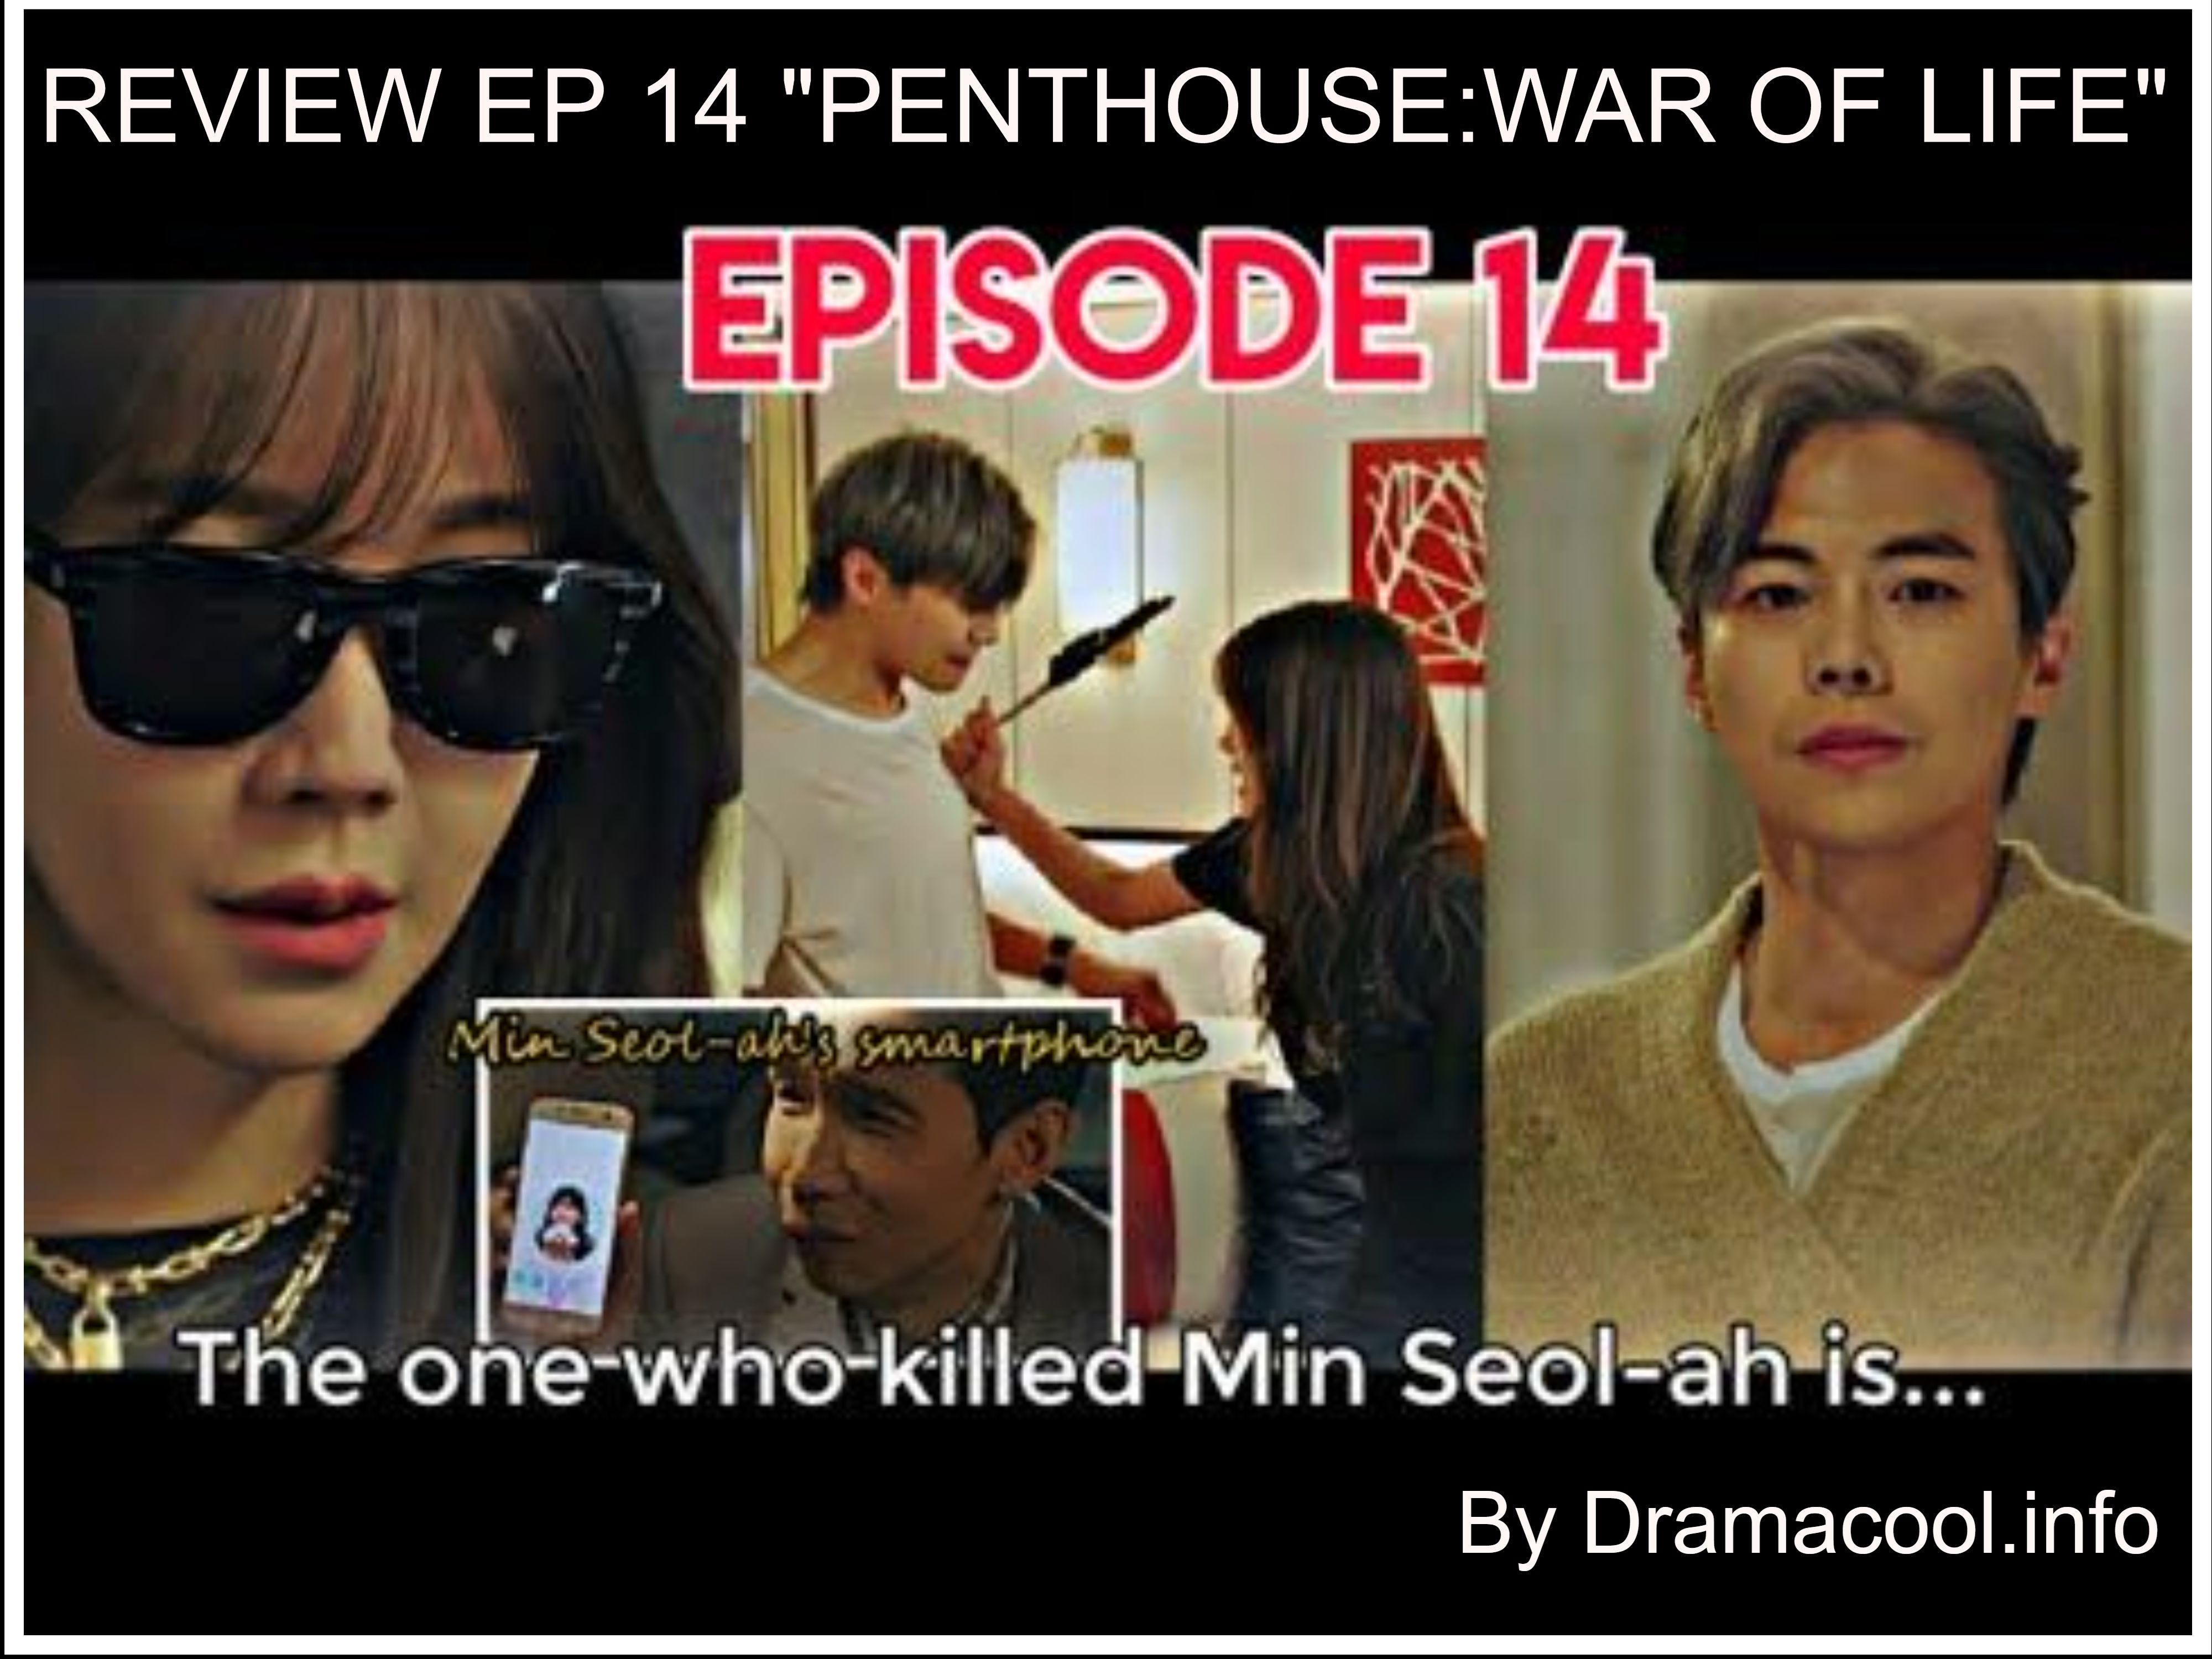 REVIEW EP 14